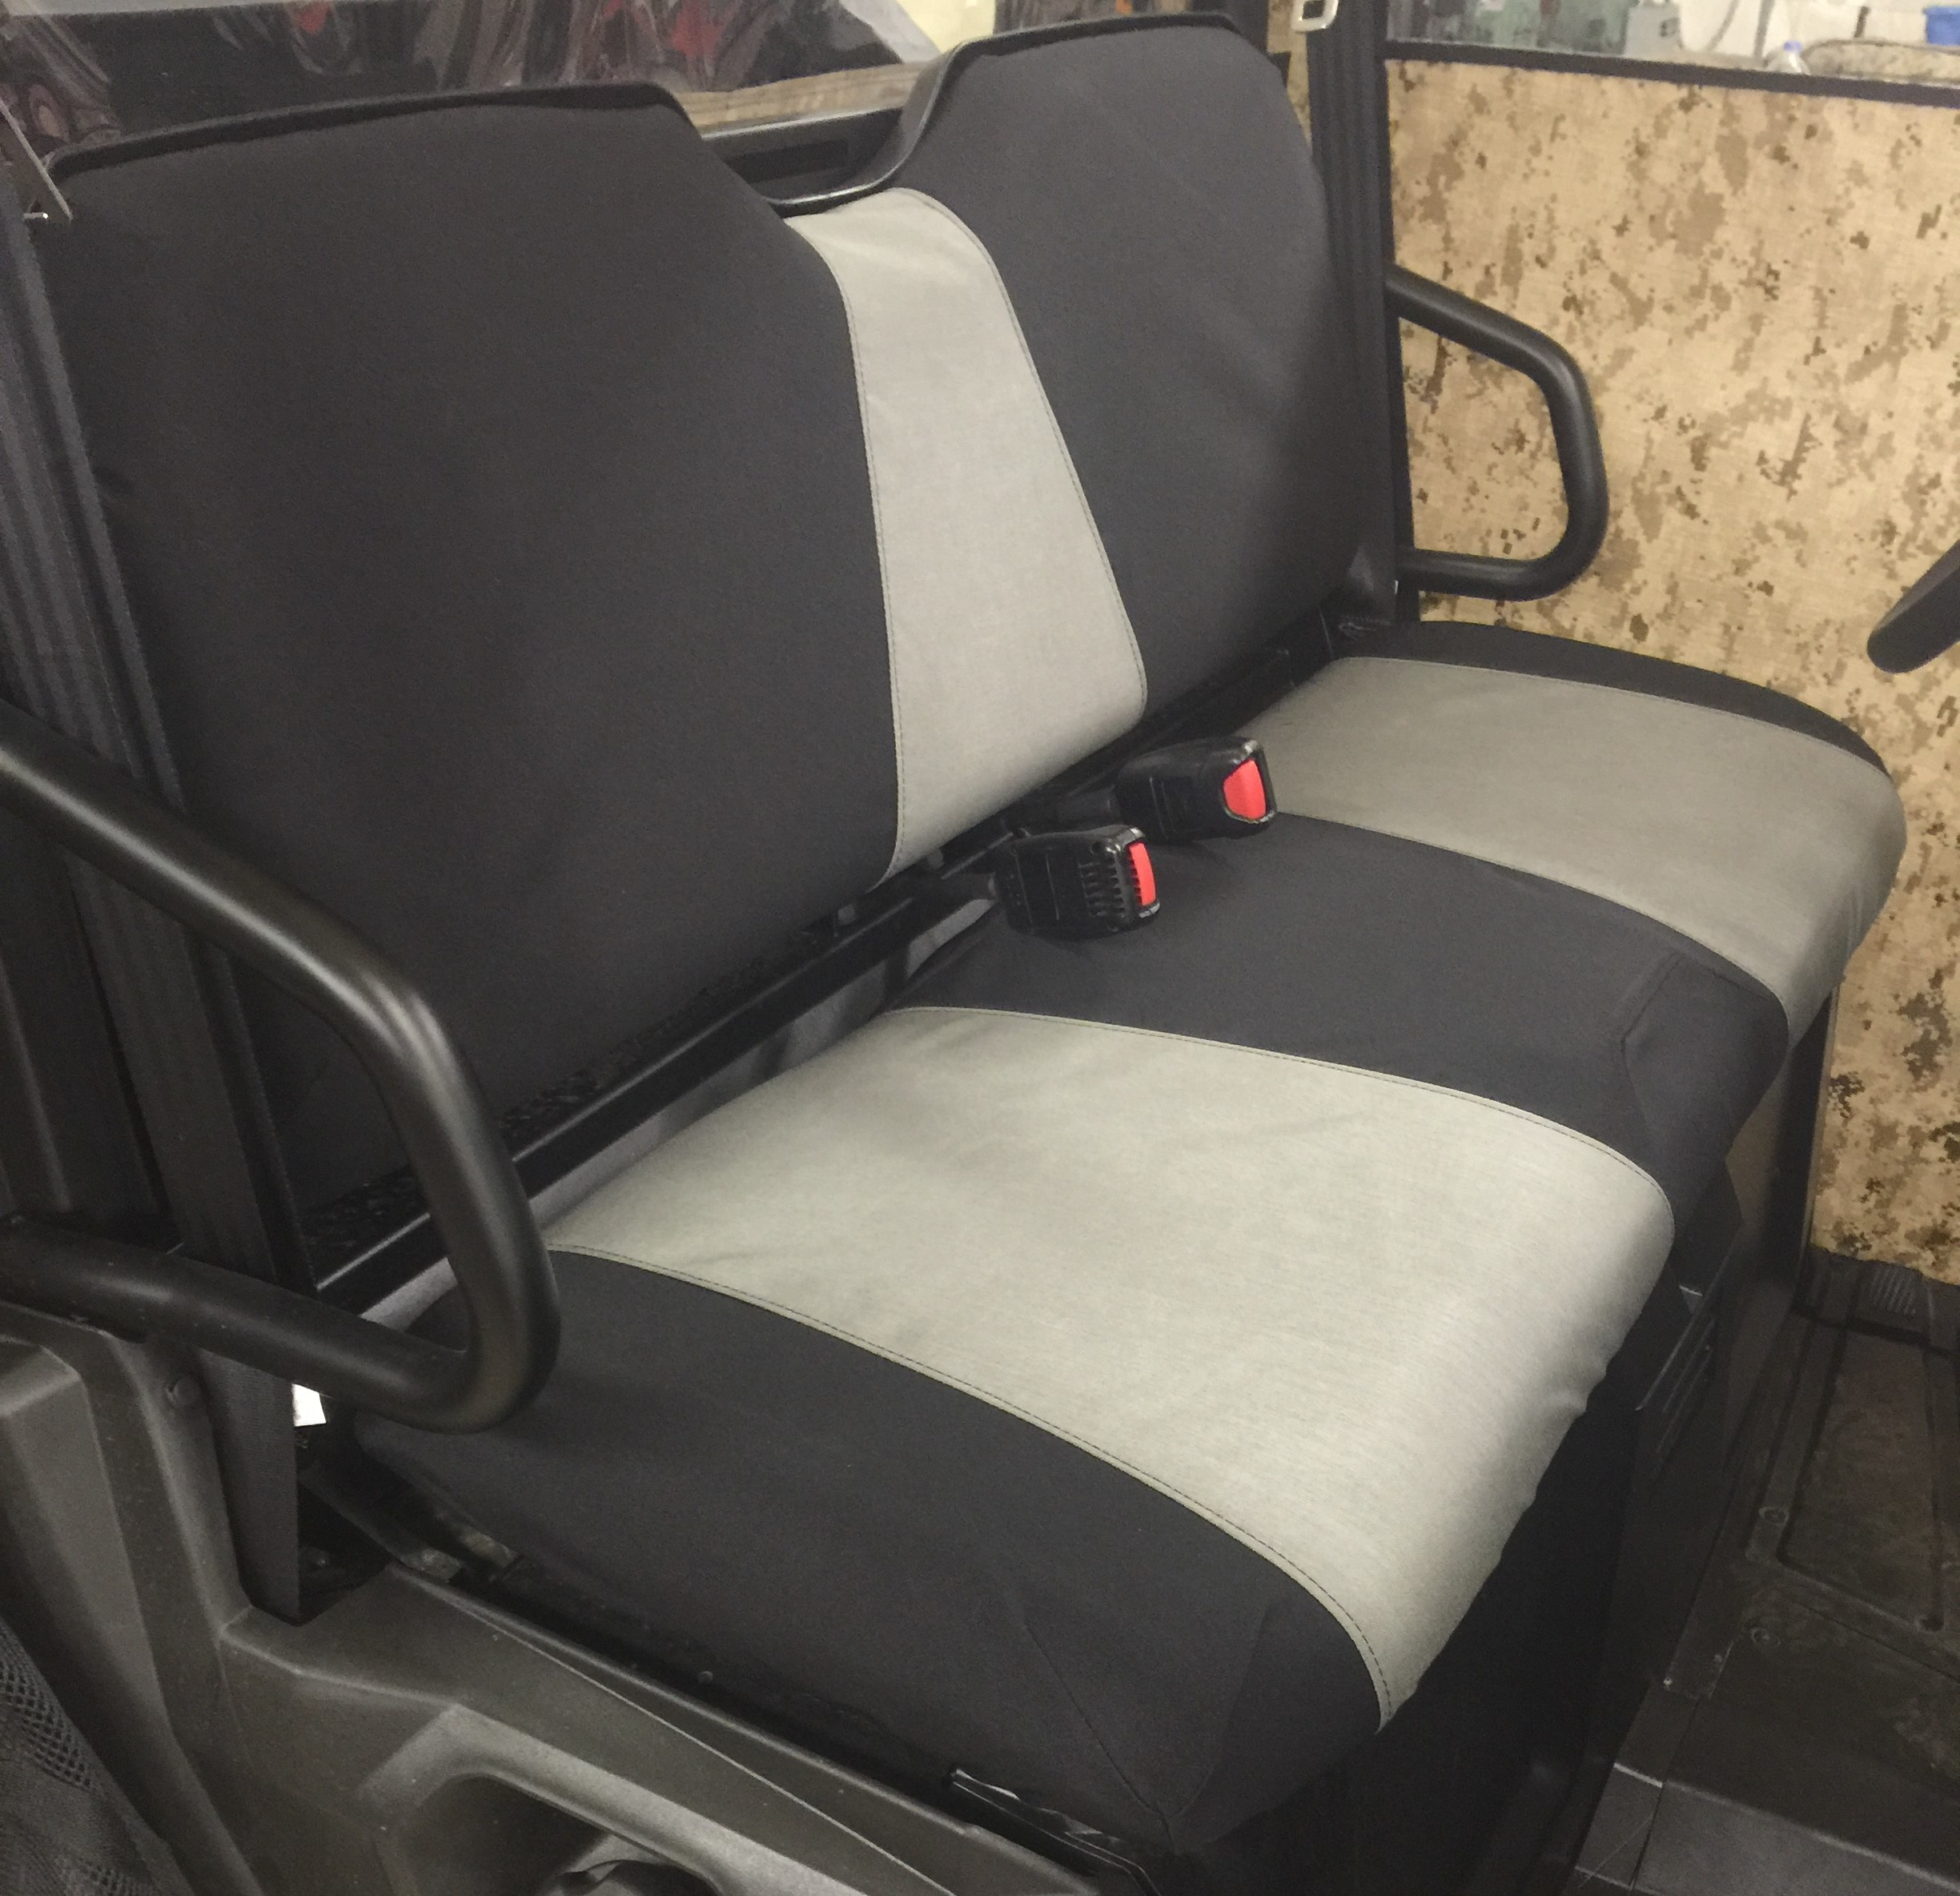 Polaris Ranger 500 Seat Covers Velcromag